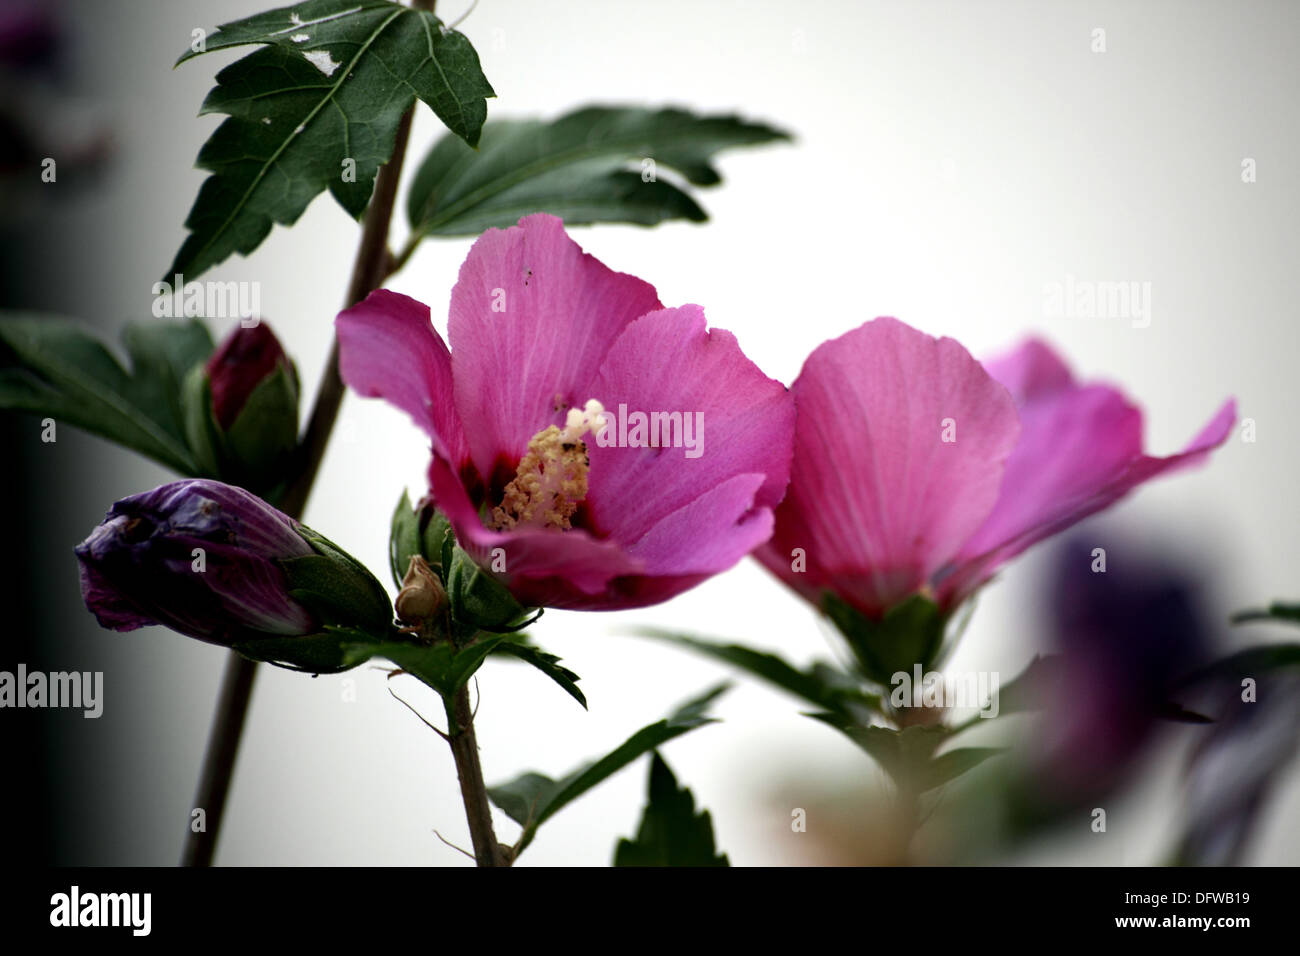 Hibiscus Is A Perennial Shrub With Flowers Pink Also Called Chinese